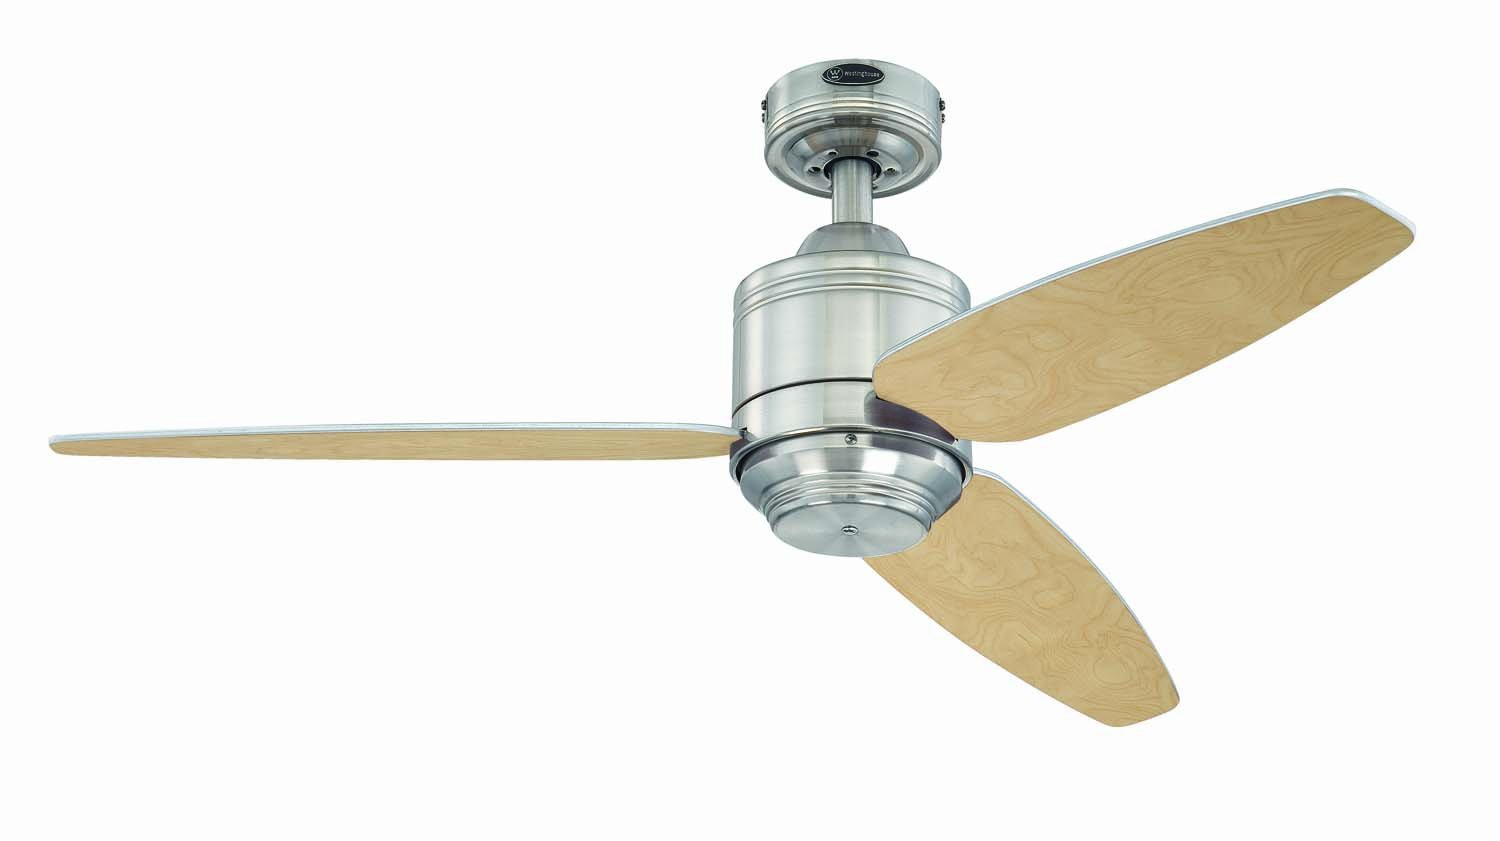 Buy westinghouse sydney 44 inches ceiling fan 78998 online at low buy westinghouse sydney 44 inches ceiling fan 78998 online at low prices in india amazon aloadofball Choice Image